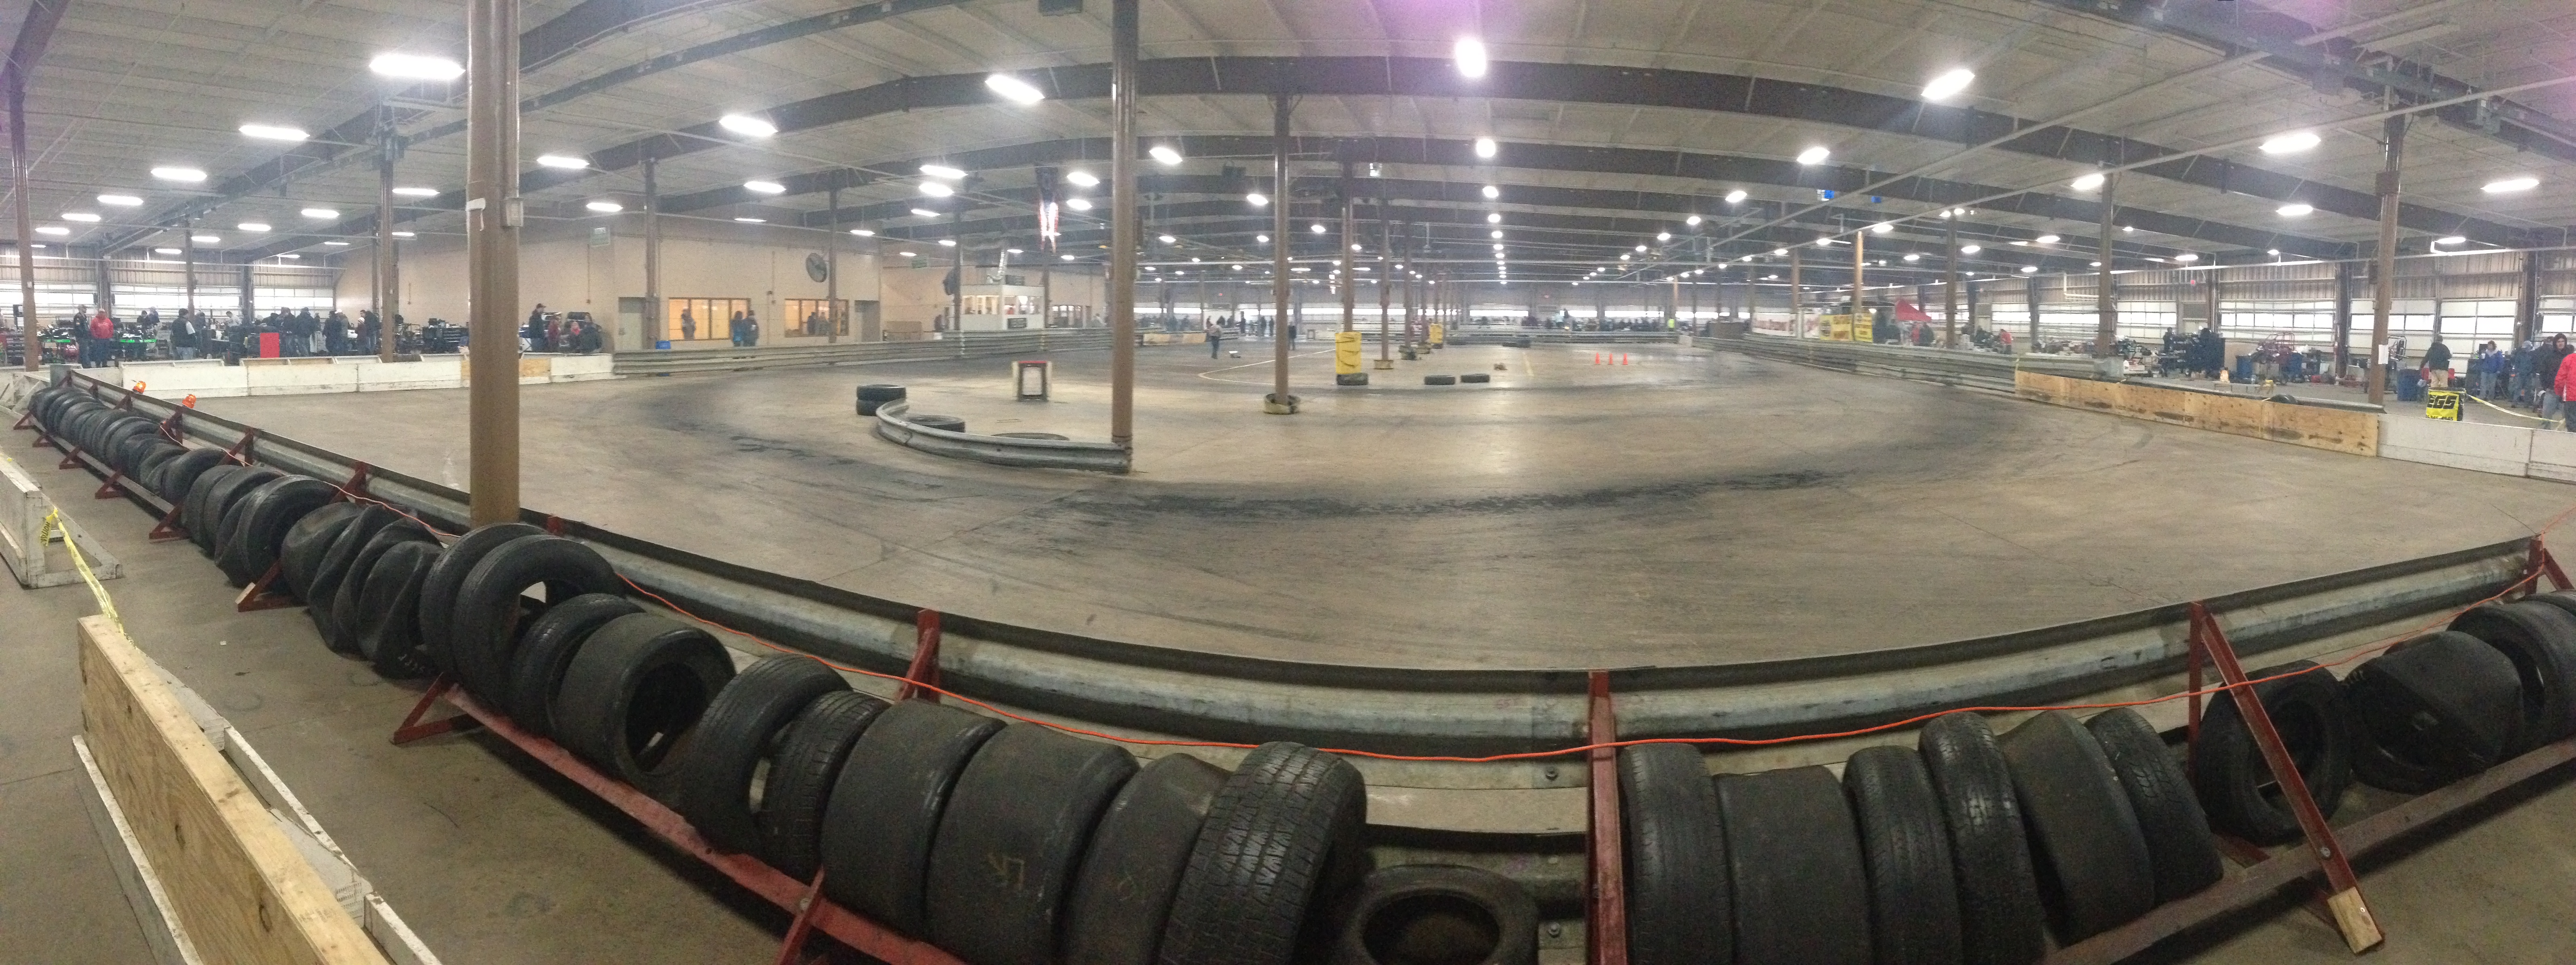 The panoramic view of today's flat concrete oval.